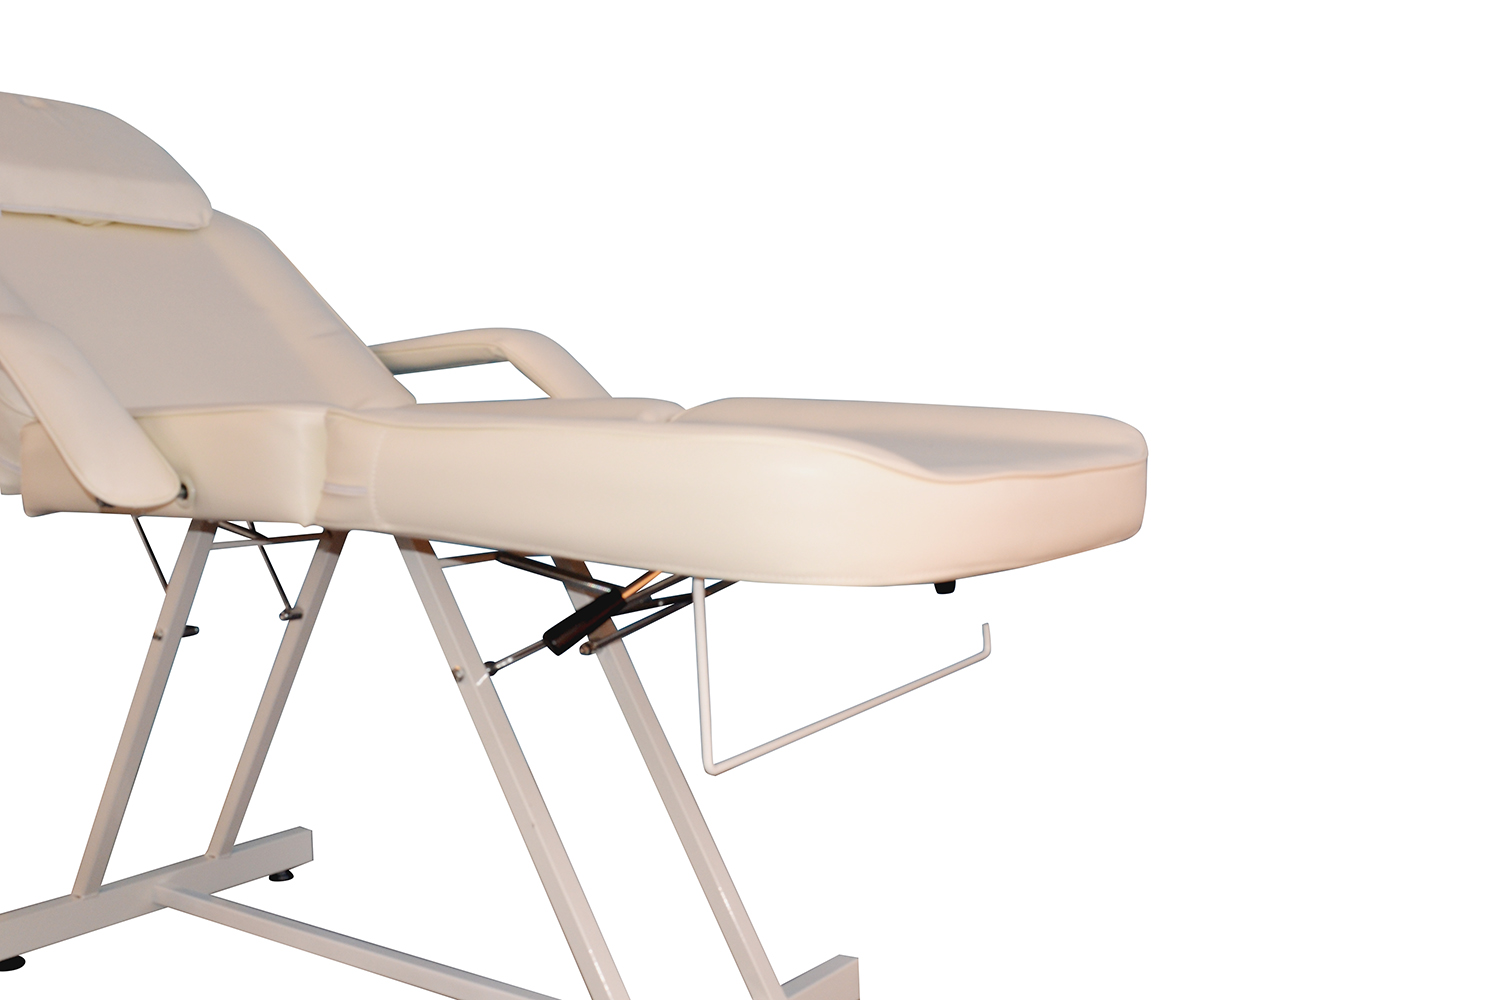 Portable Tattoo Chair Barberpub 75 39 39 Beauty Bed Salon Spa Tattoo Chair